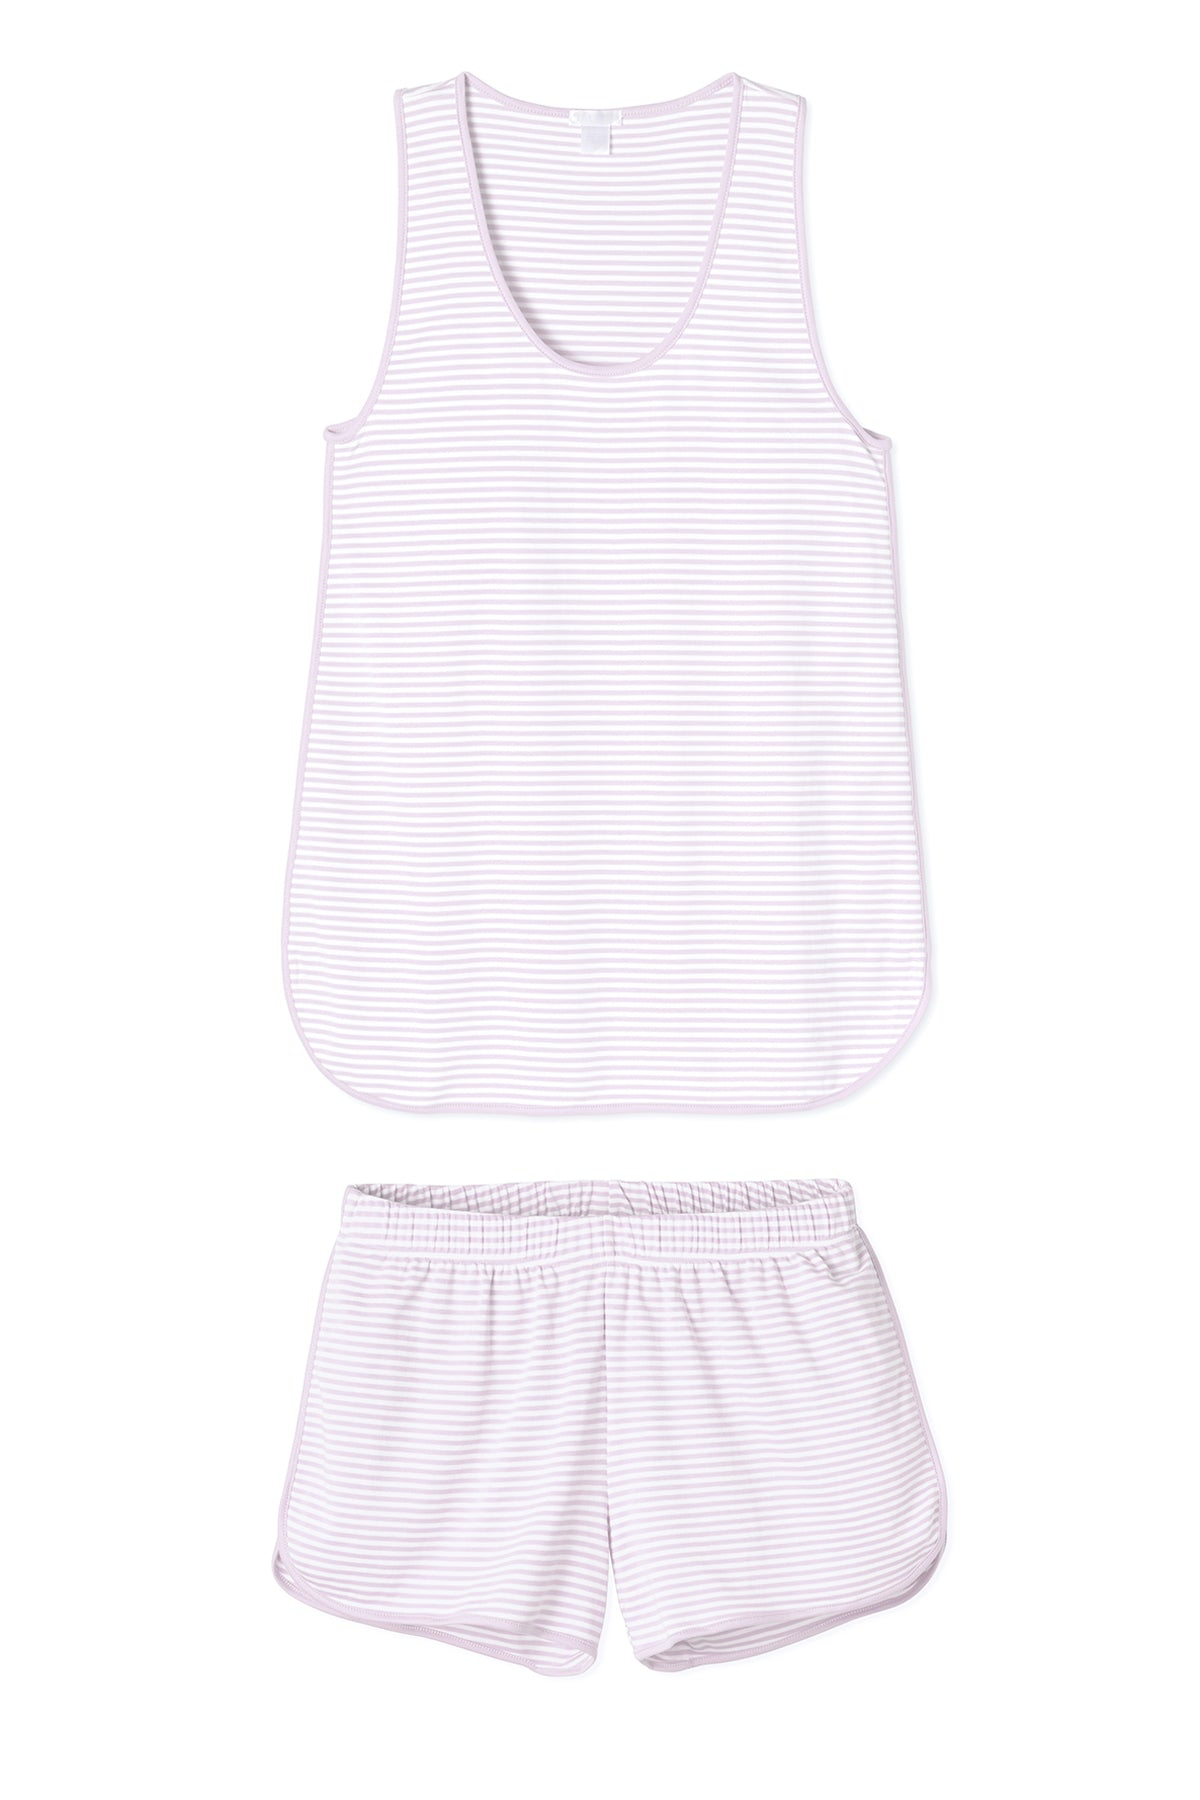 Pima Tank-Short Set in Lavender